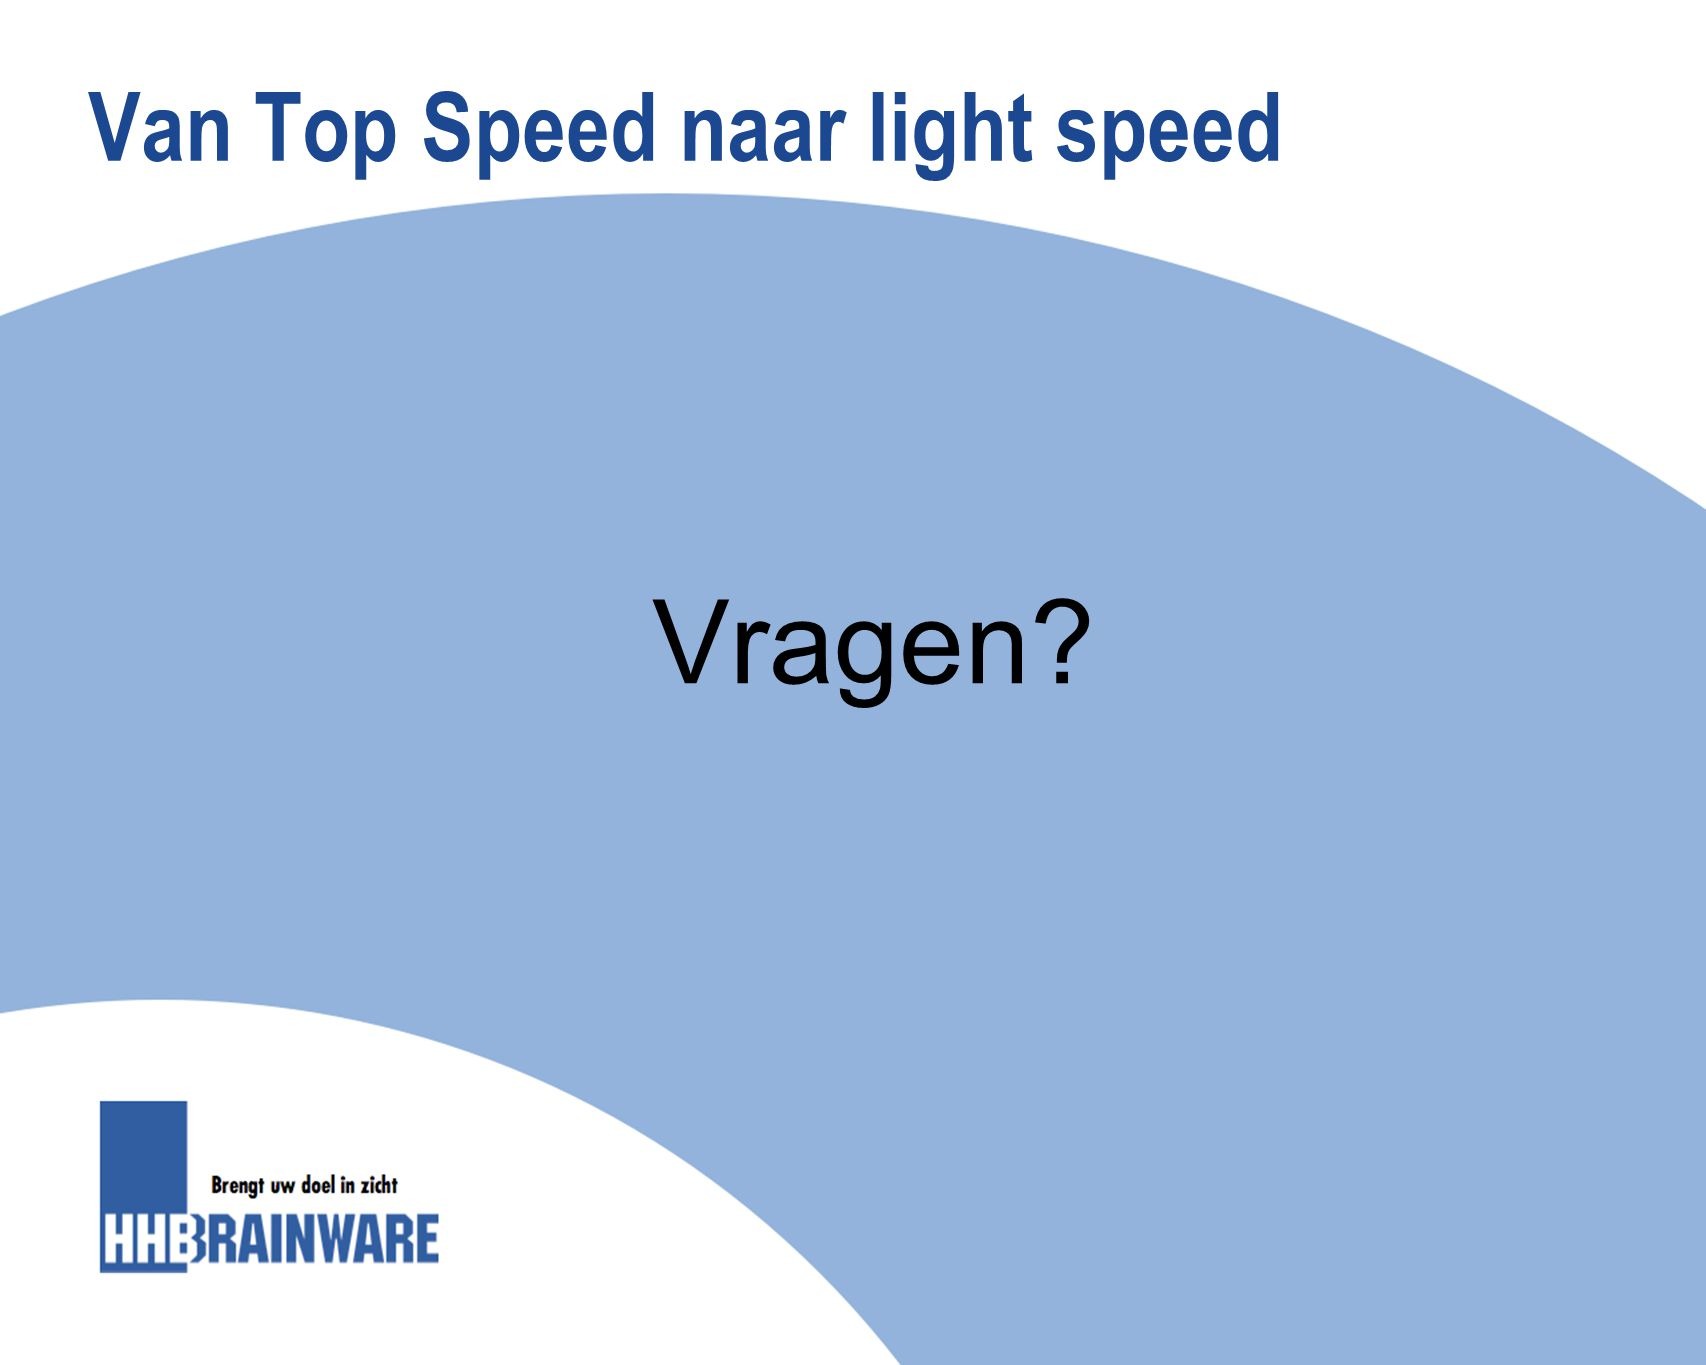 Van Top Speed naar light speed